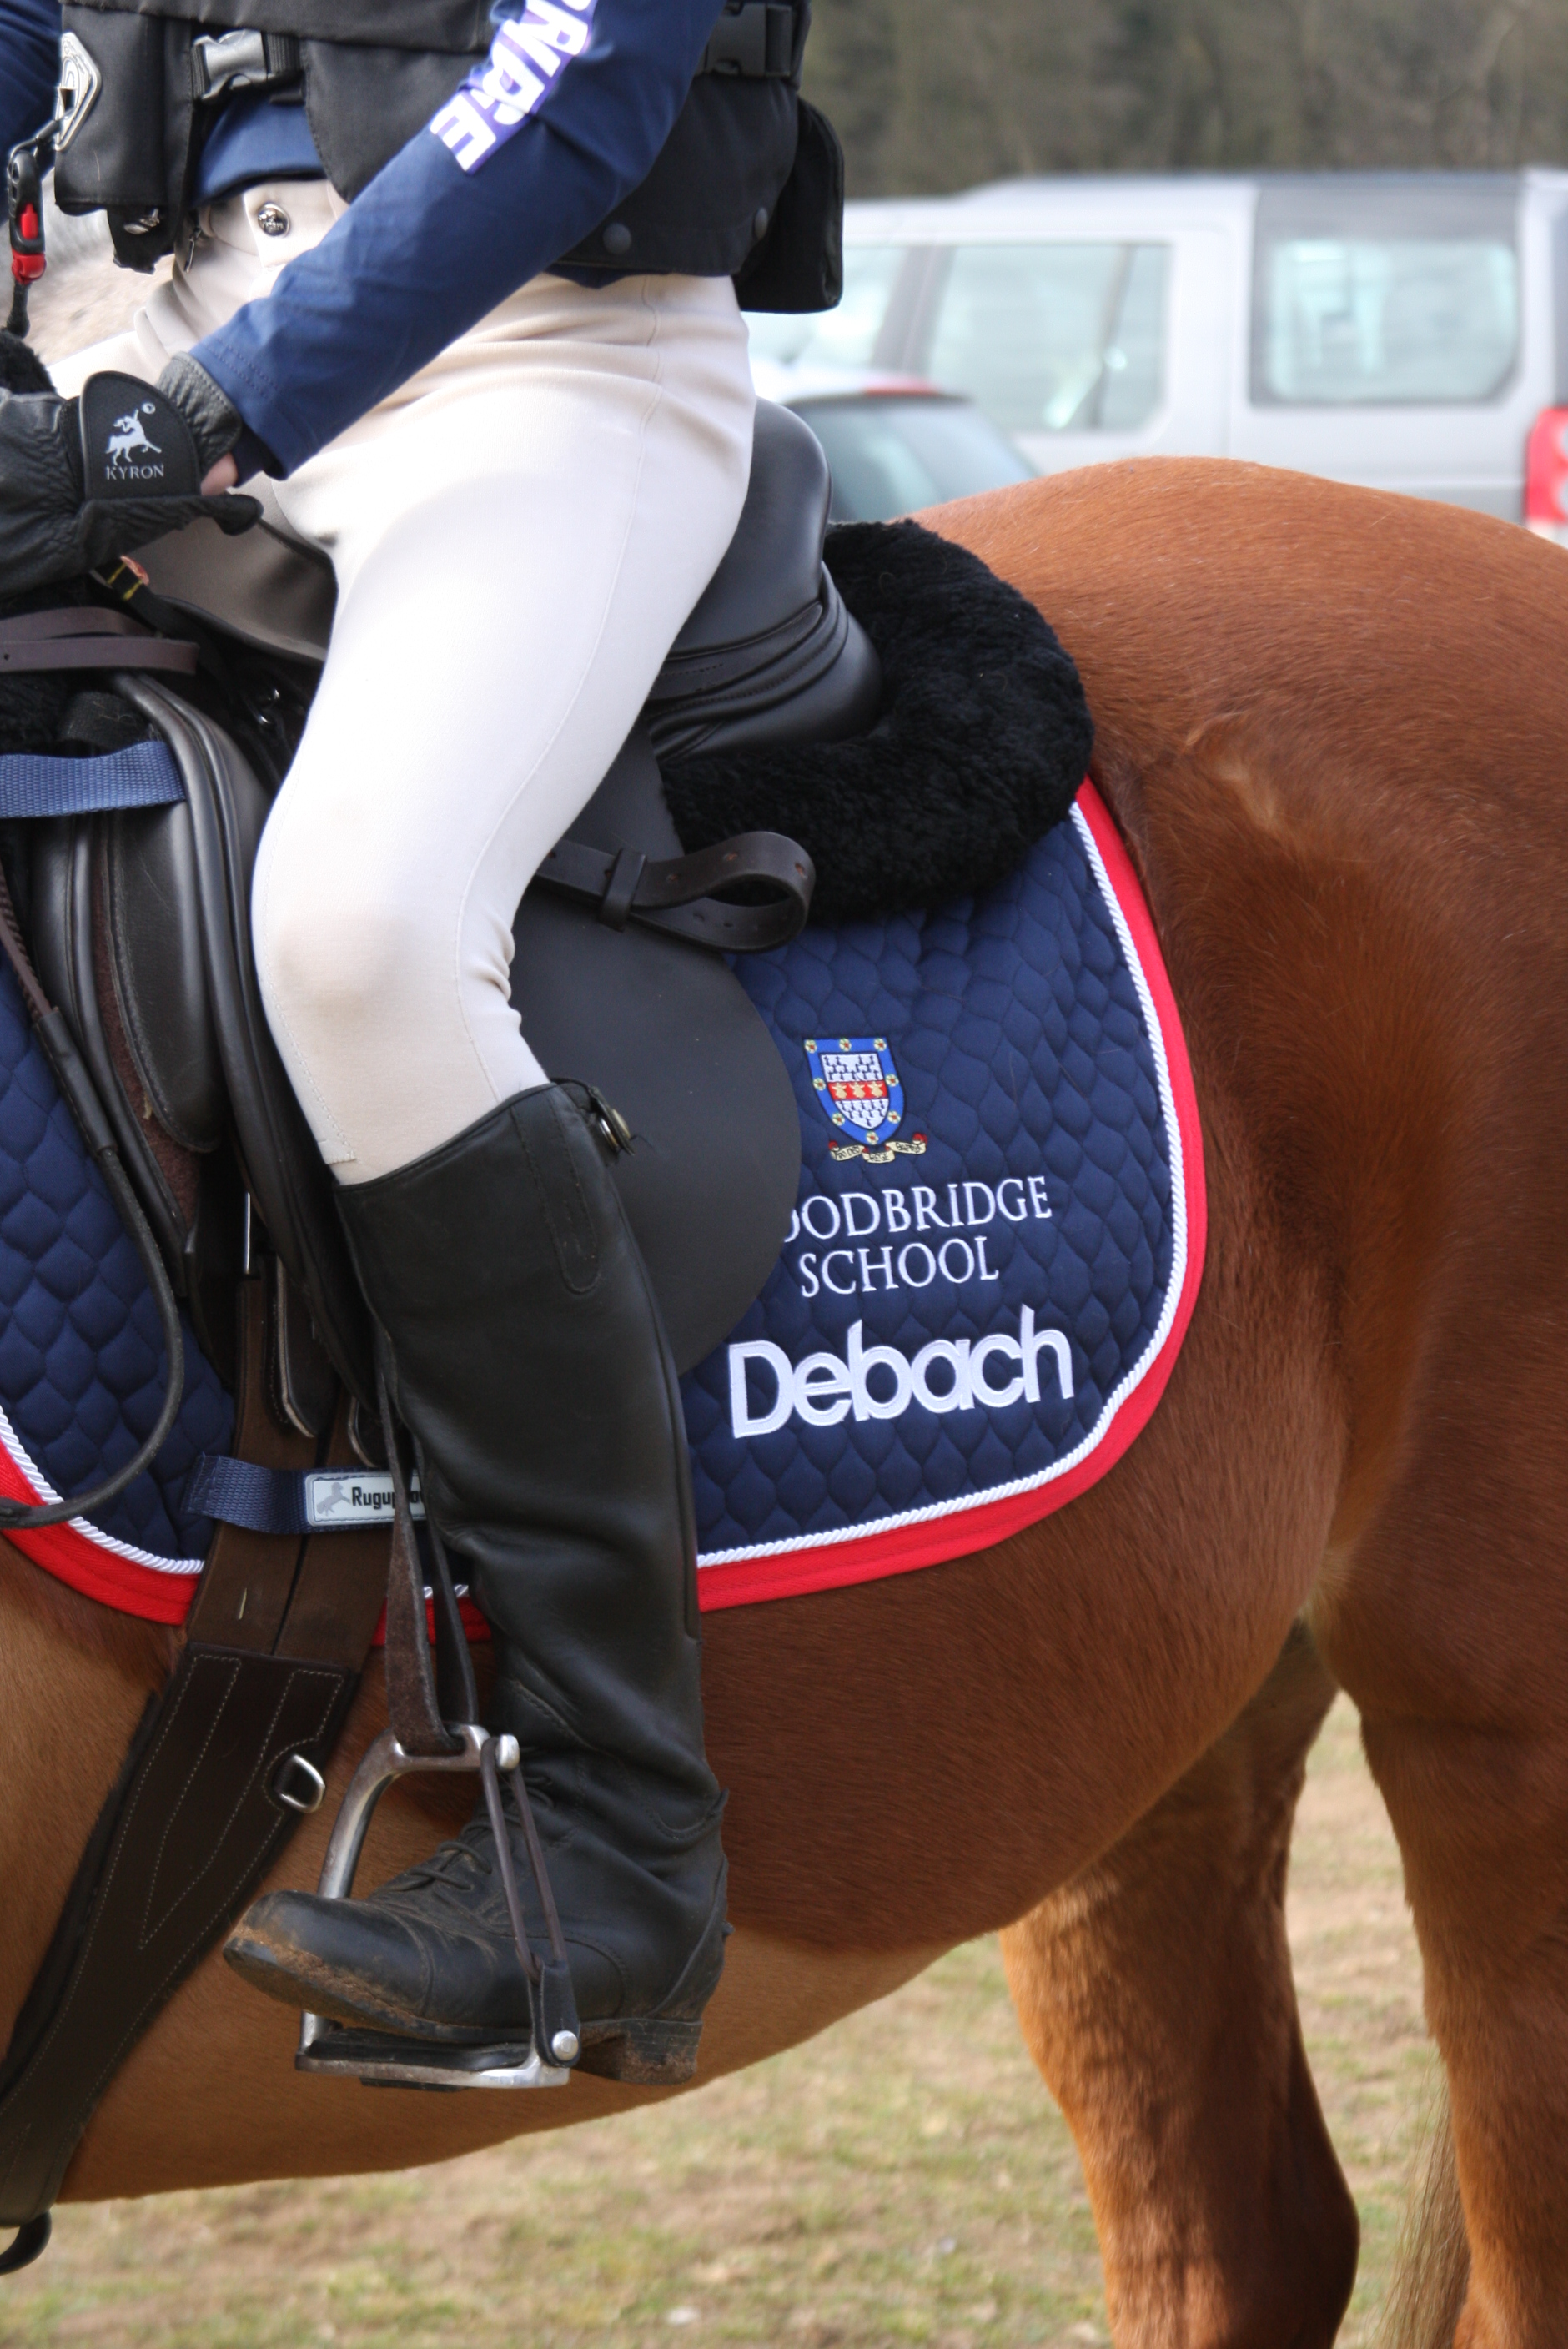 The Debach logo proudly displayed by the Woodbridge School Junior Equestrians.